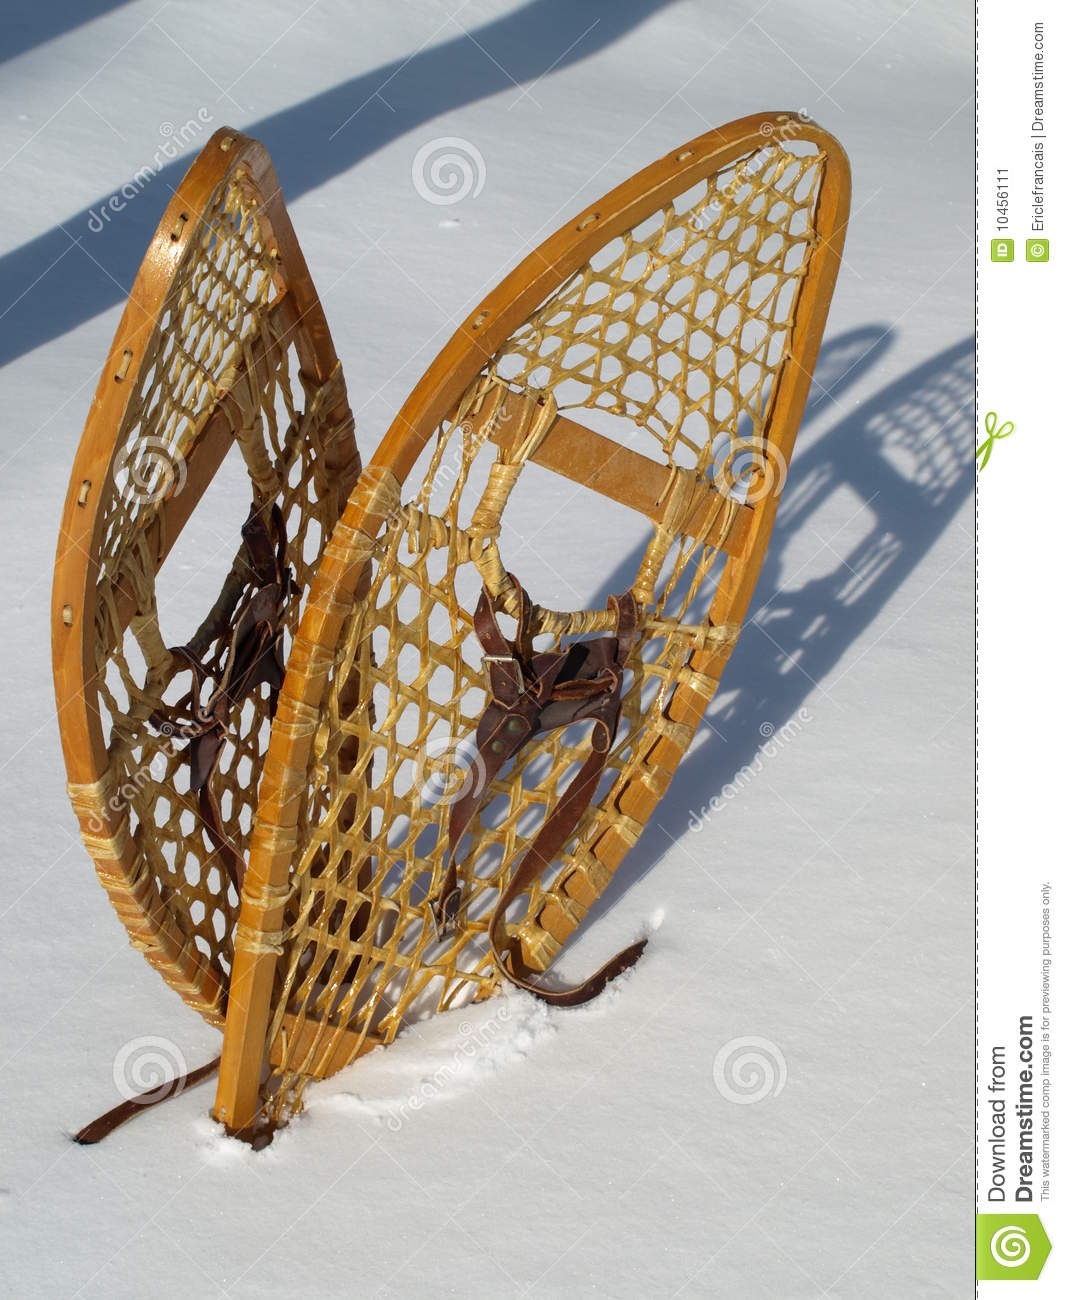 dating vintage snowshoes Craigslist provides local classifieds and forums for jobs, housing, for sale, personals, services, local community, and events.